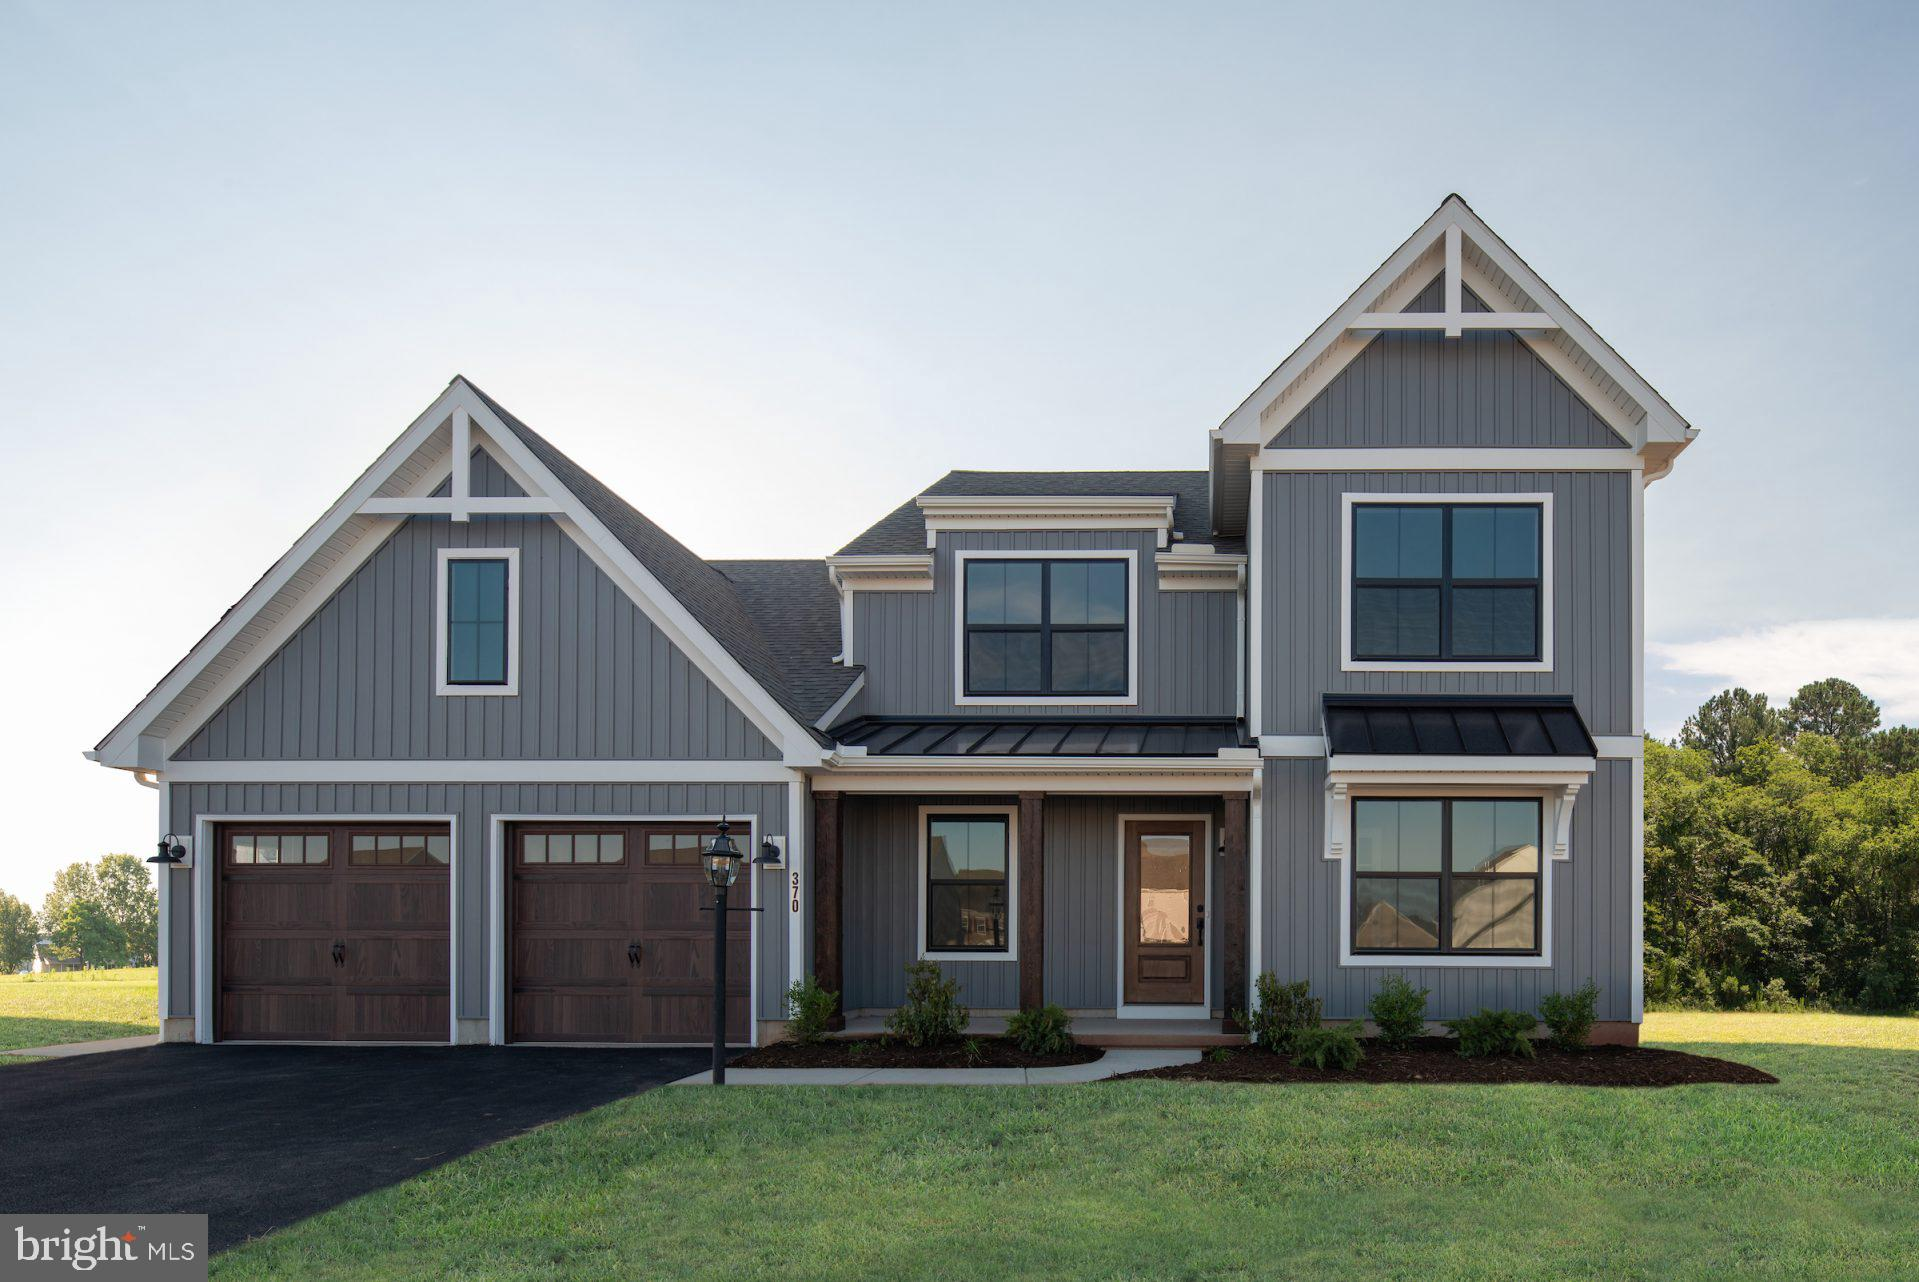 Select from our library of homes to build on this fantastic home site. We are featuring the Sycamore